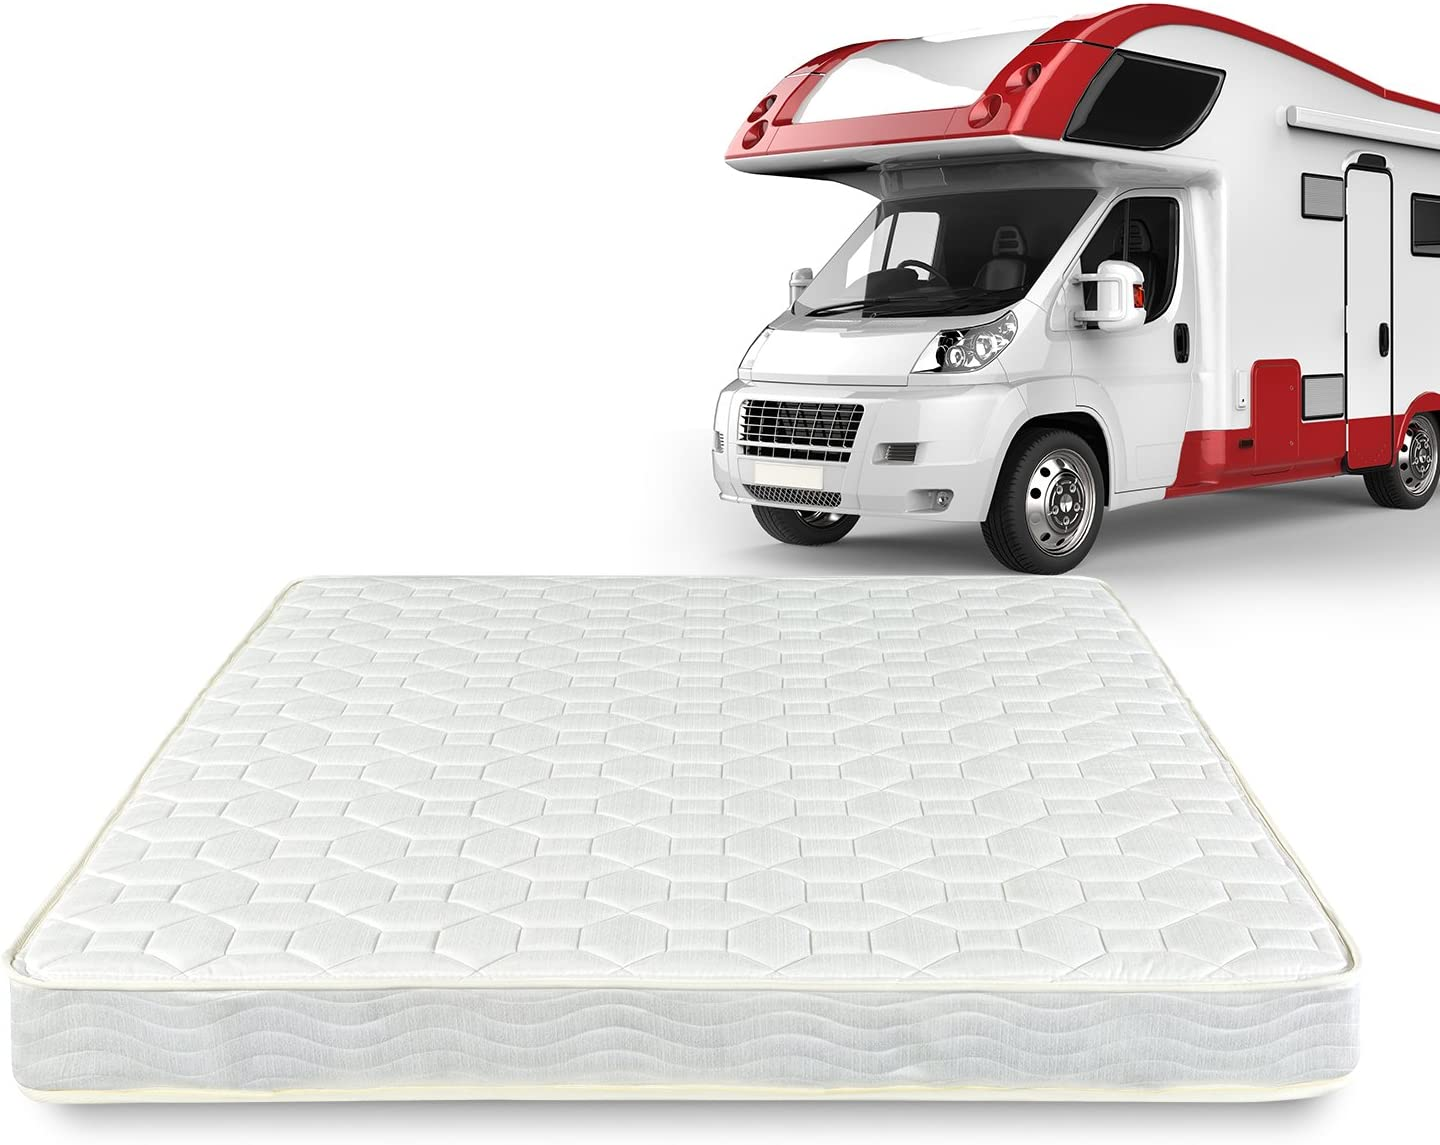 Zinus 6 Inch Spring RV/Camper/Trailer/Truck Mattress, Short Queen